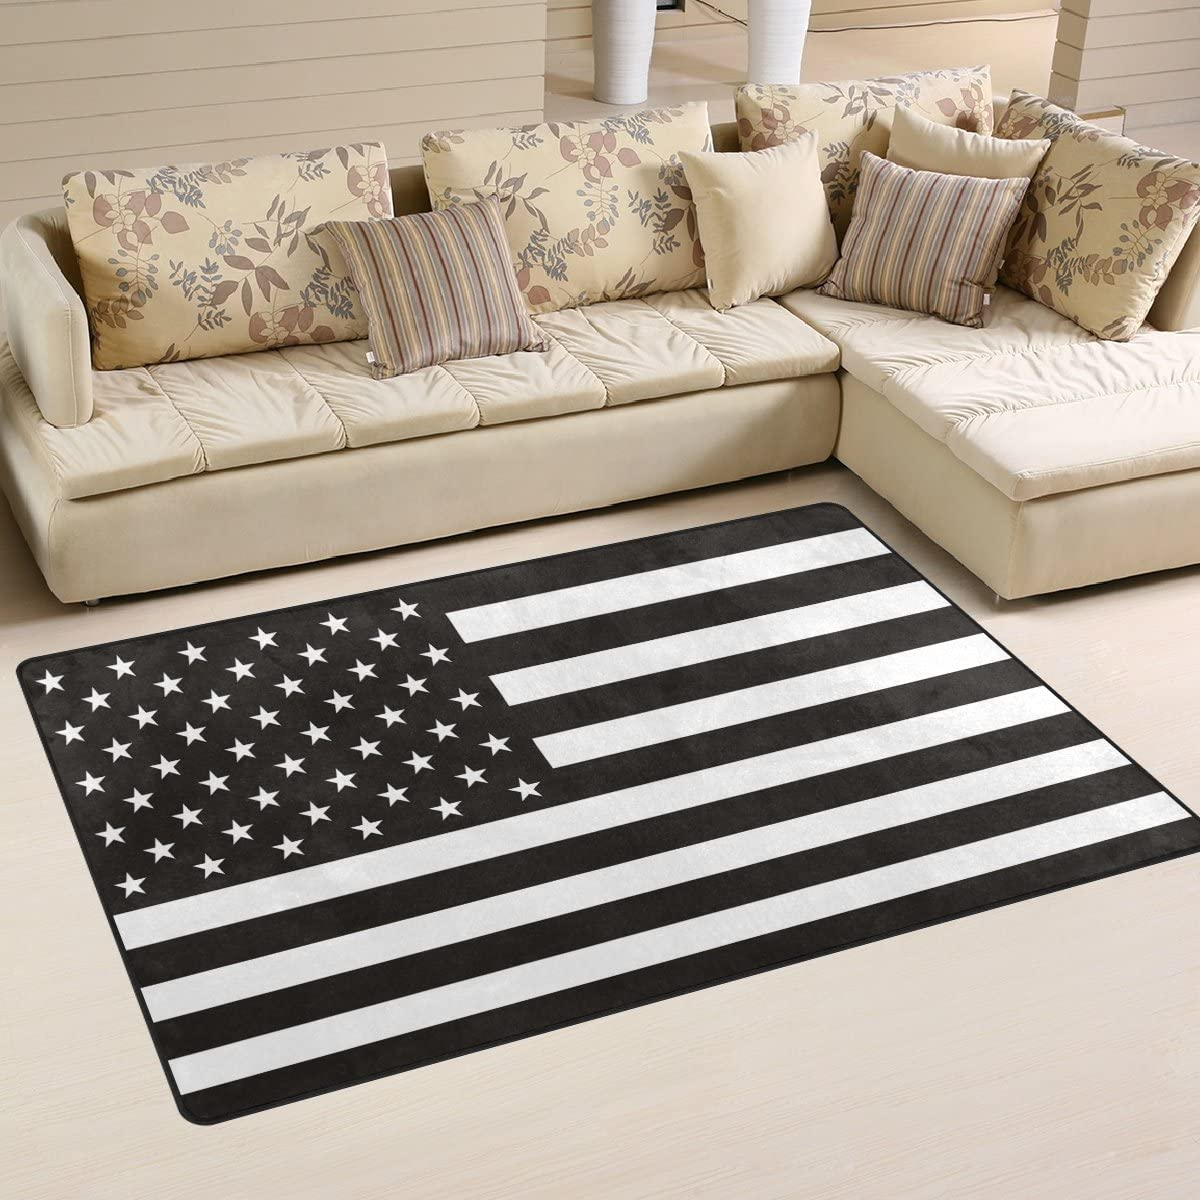 LORVIES Black and White American Flag Area Rug Carpet Non-Slip Floor Mat Doormats for Living Room Bedroom 60 x 39 inches